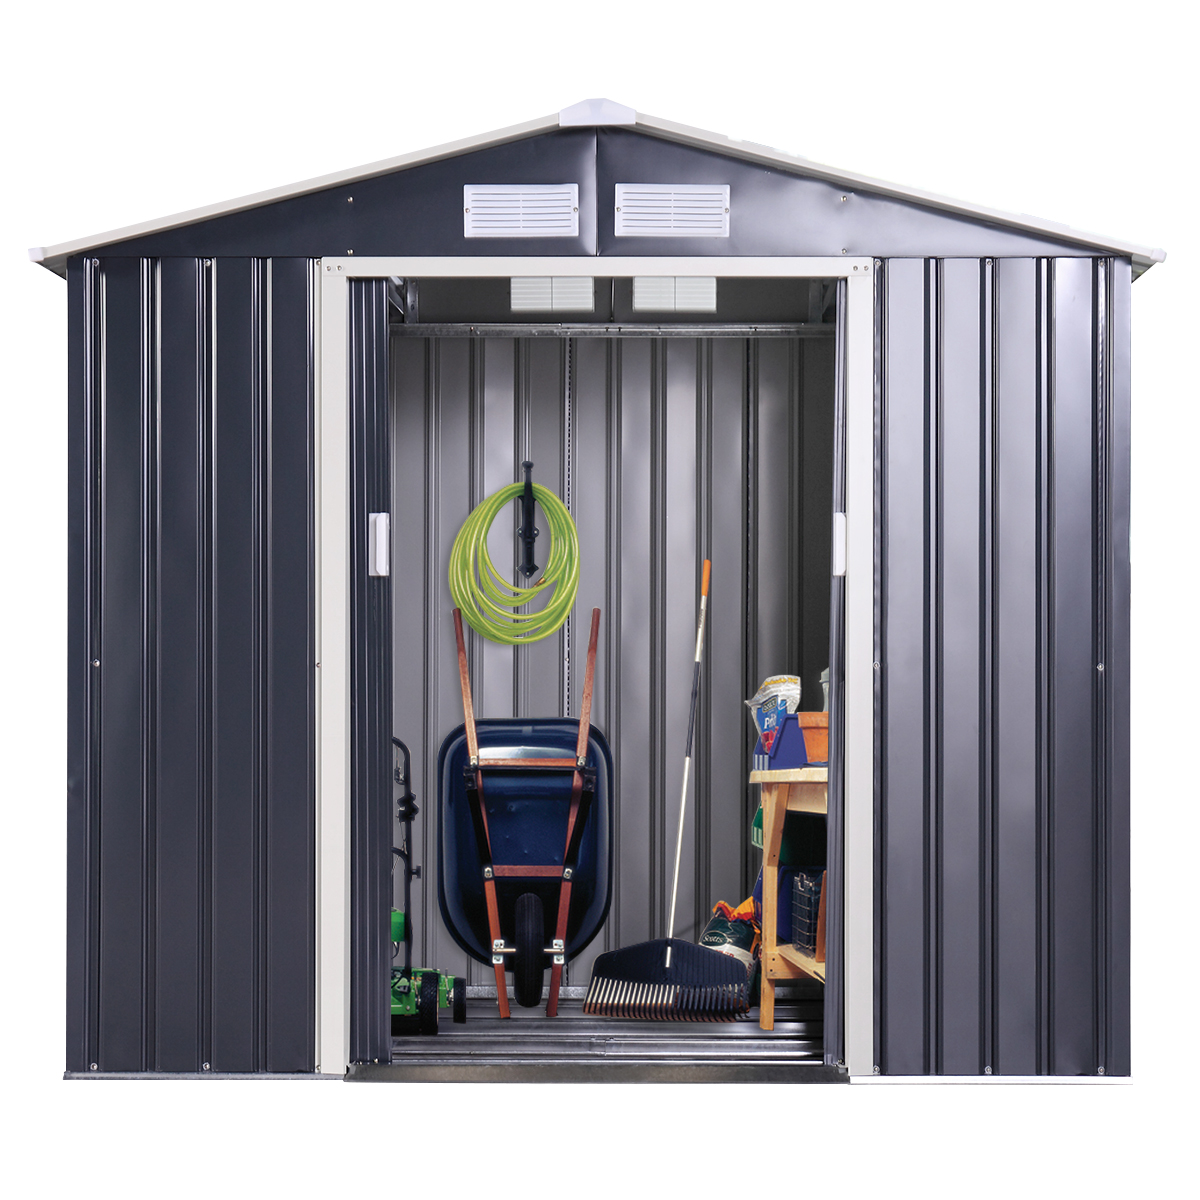 9 x 10 Ft Metal Garden Utility Storage Shed Outdoor Backyard Heavy Duty Tool House Dark Gray